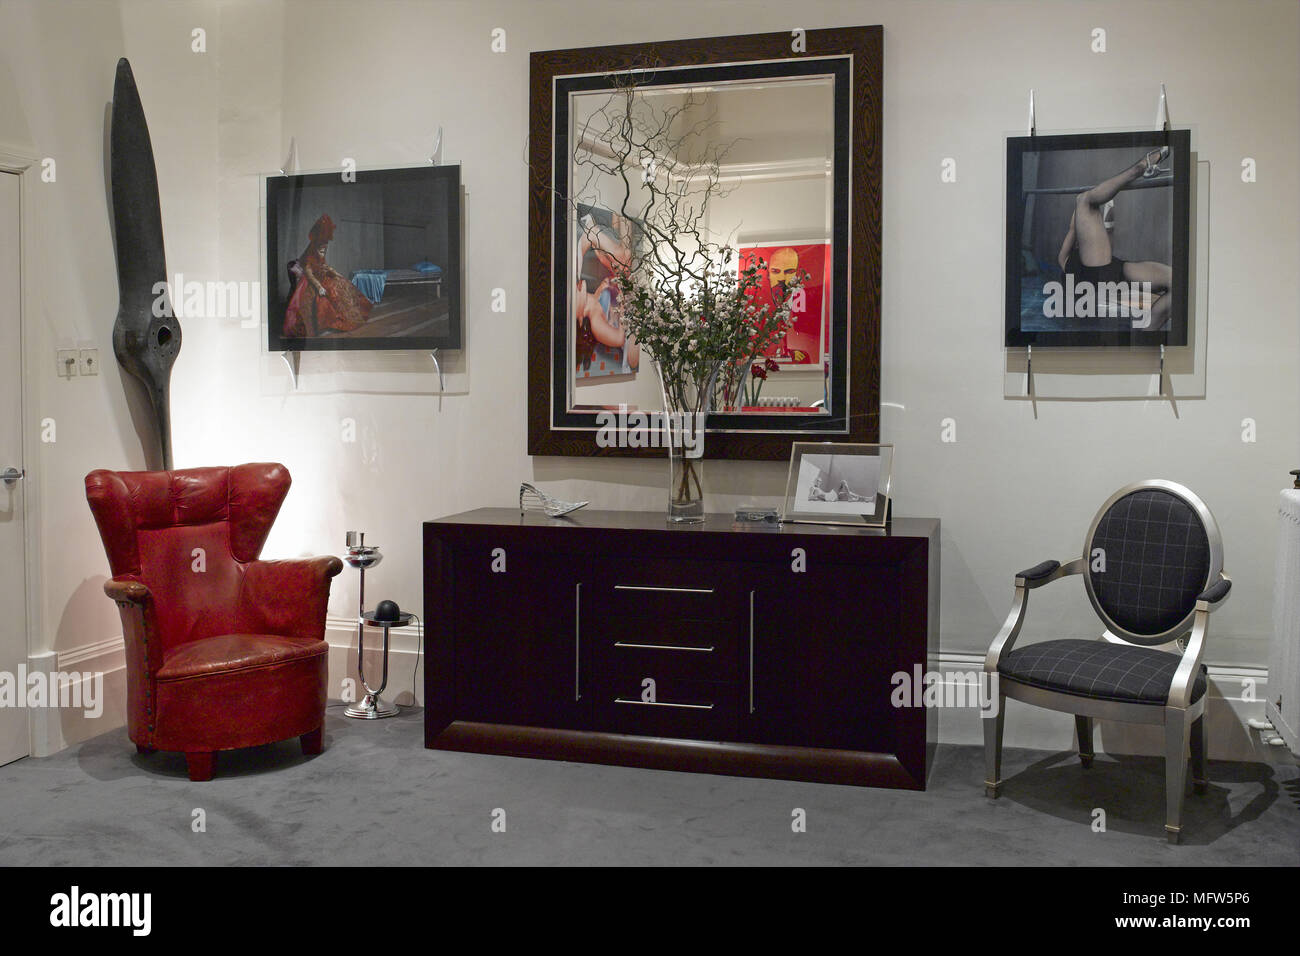 A modern sitting room with an eclectic selection of furniture and paintings including a wooden propeller mounted on the wall next to the door. & A modern sitting room with an eclectic selection of furniture and ...